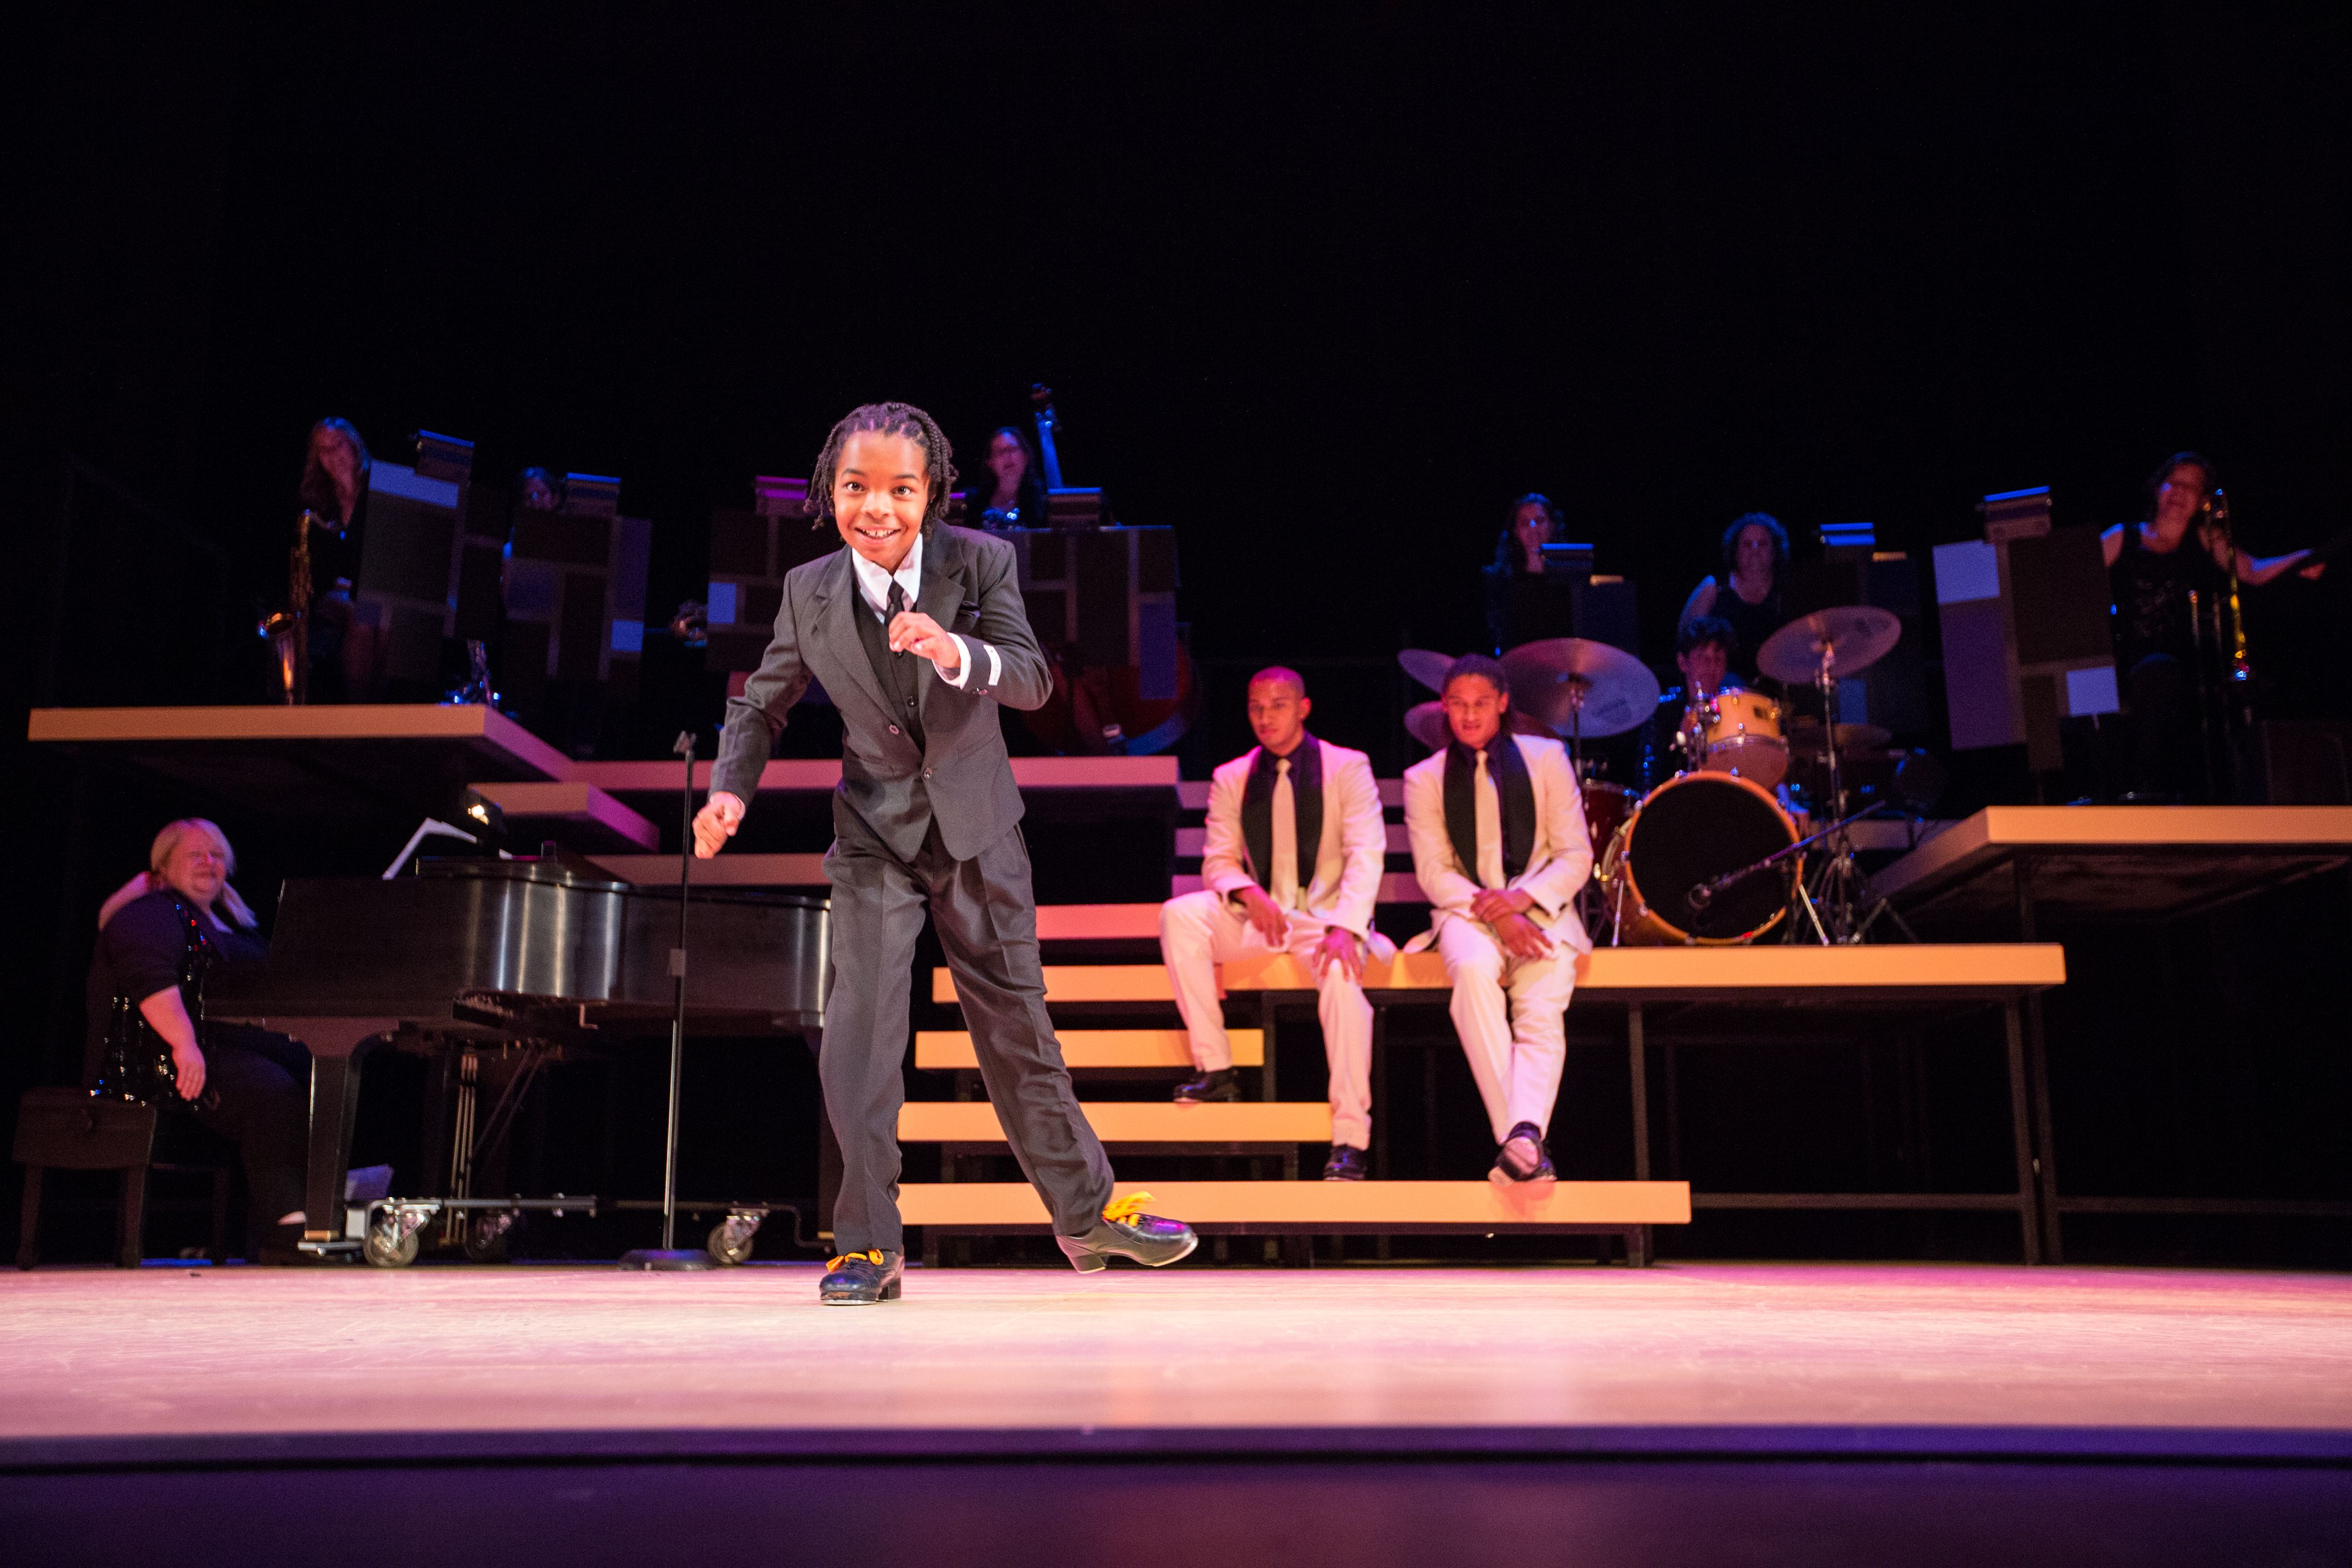 Maurice Hines Is Tappin Thru Life At Delaware Theatre Company Dcmetrotheaterarts Metro Theatre Theatre Company Theatre Arts